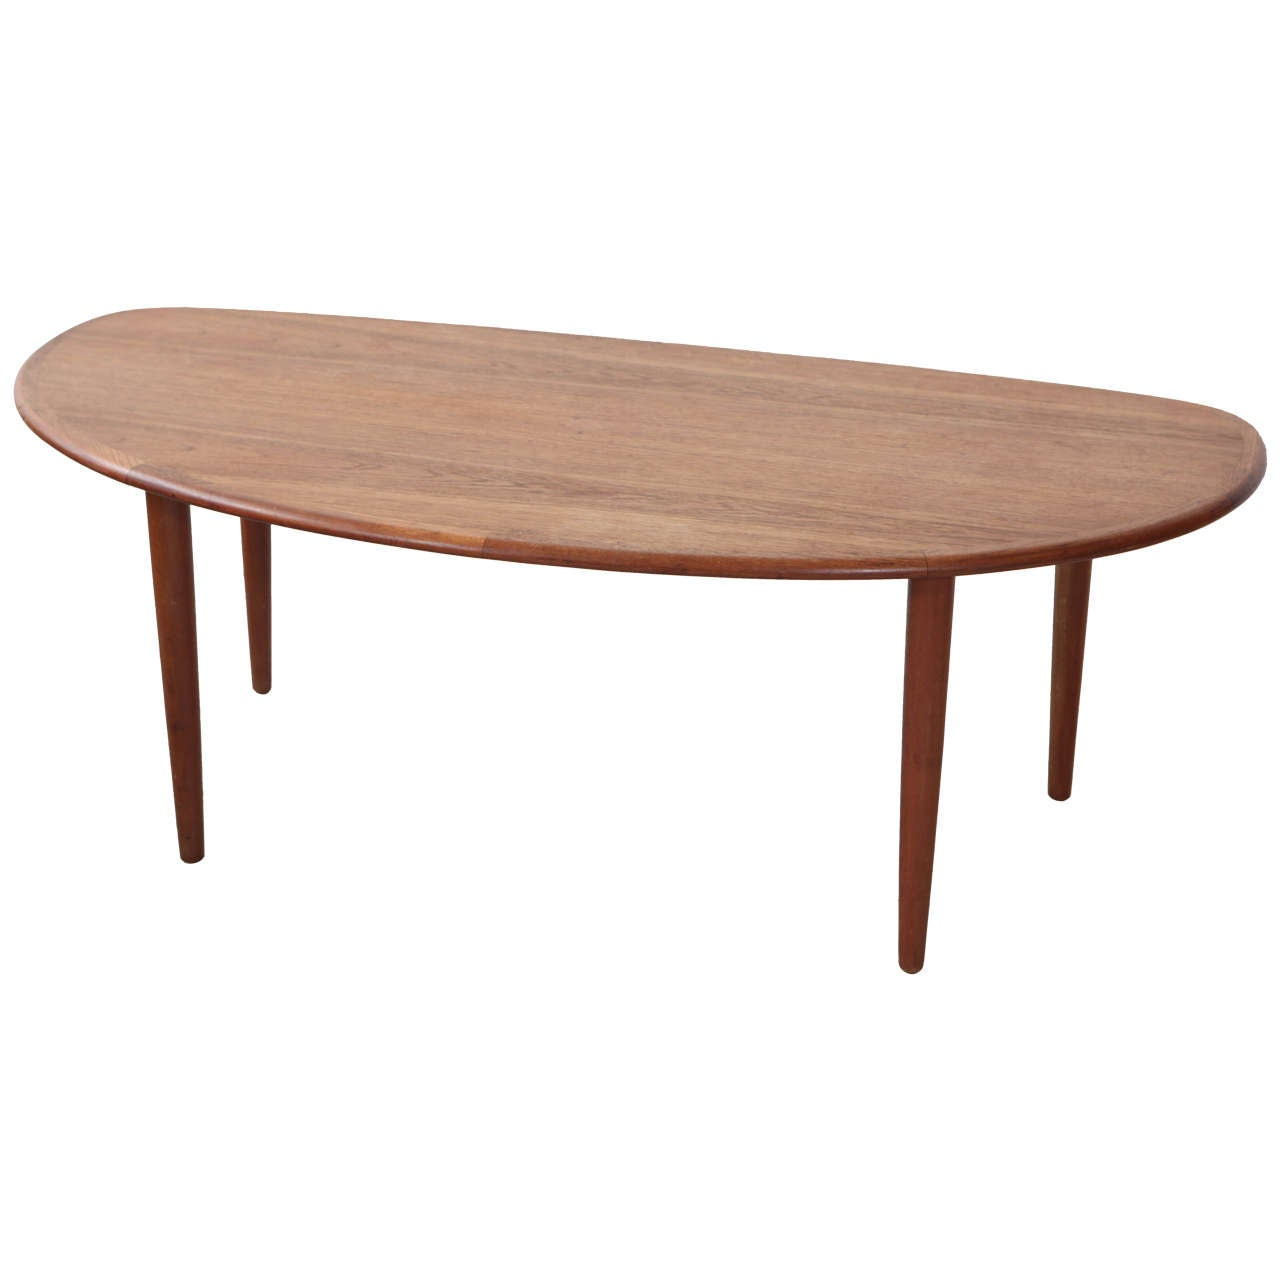 Tall Oblong Mid-Century Modern Coffee Table For Sale